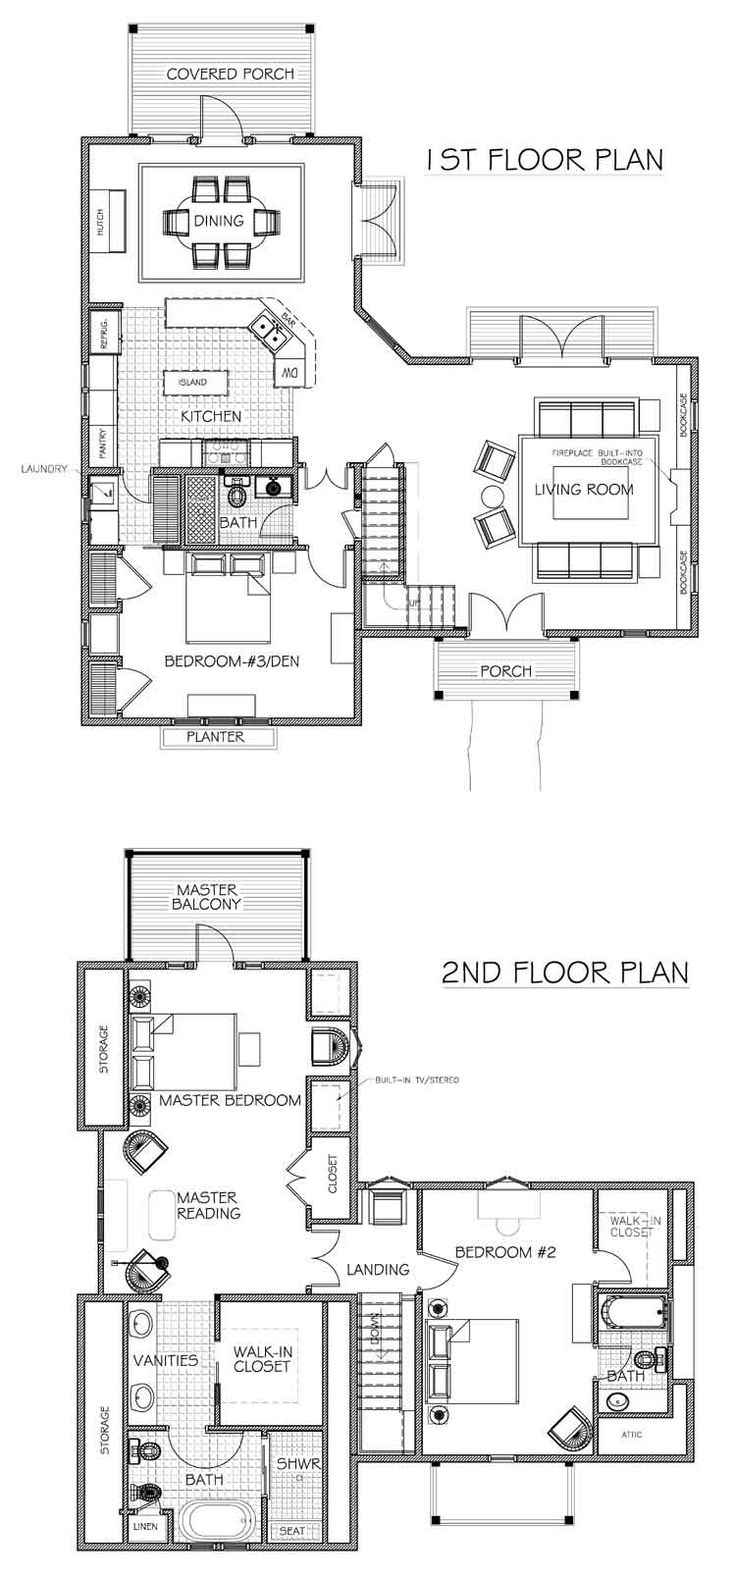 17 best ideas about cottage floor plans on pinterest Small cottage blueprints